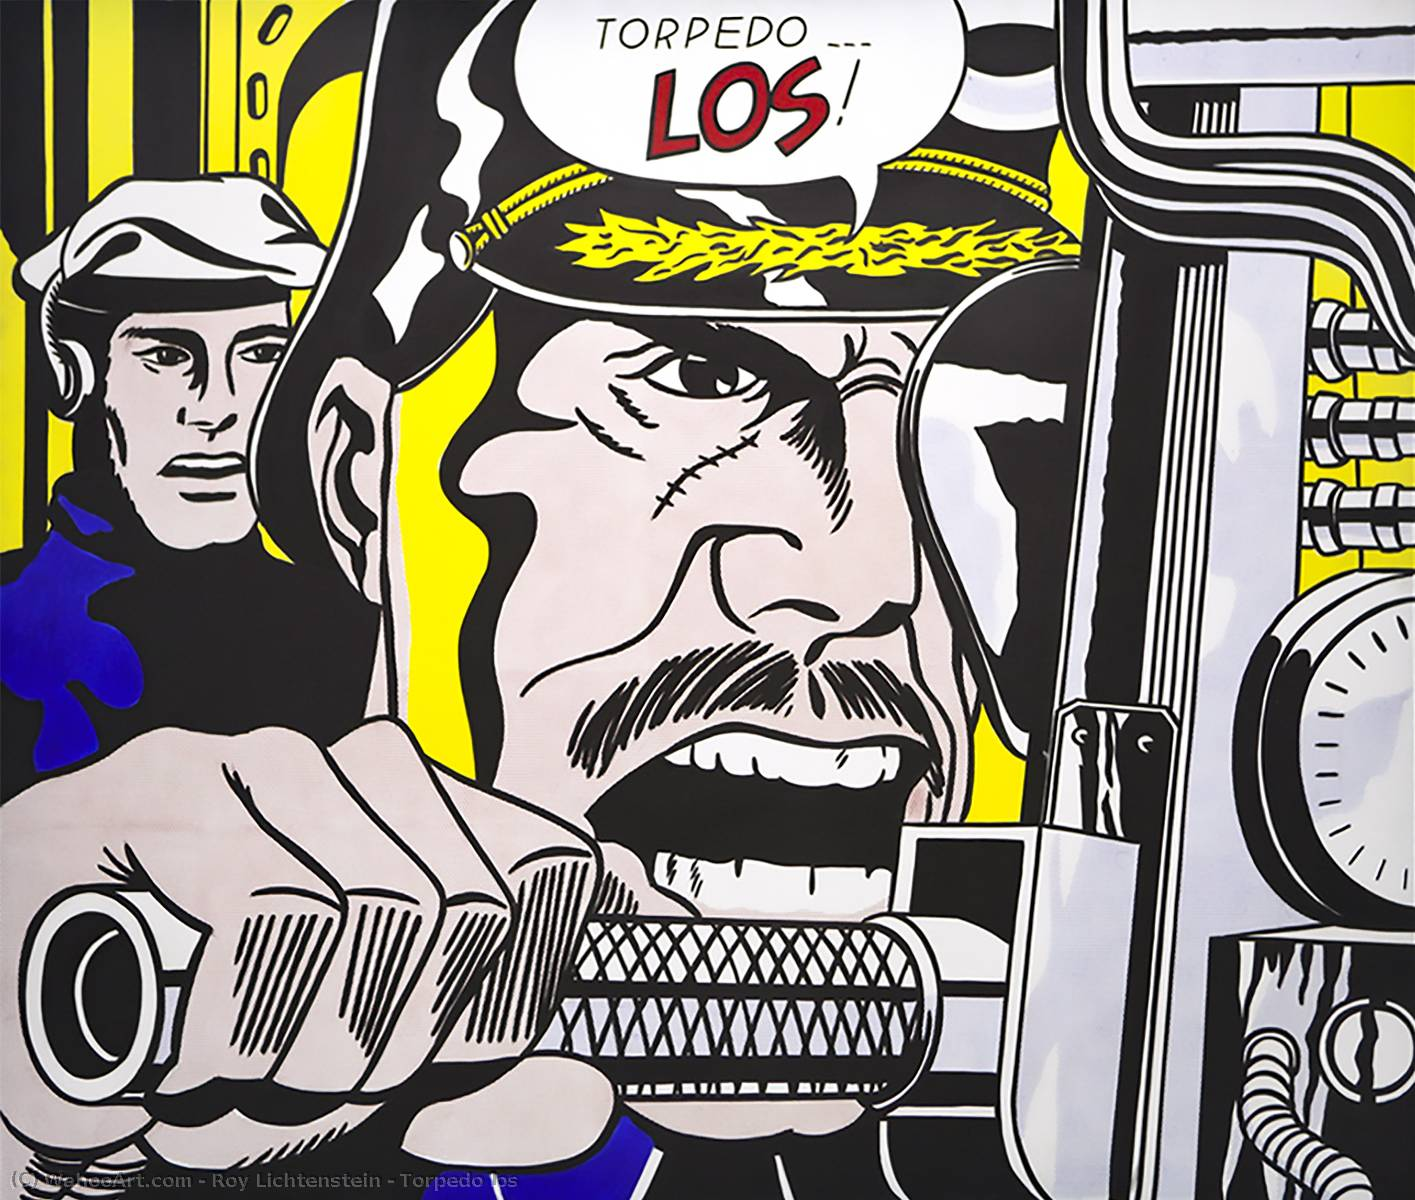 famous painting Torpedo los of Roy Lichtenstein